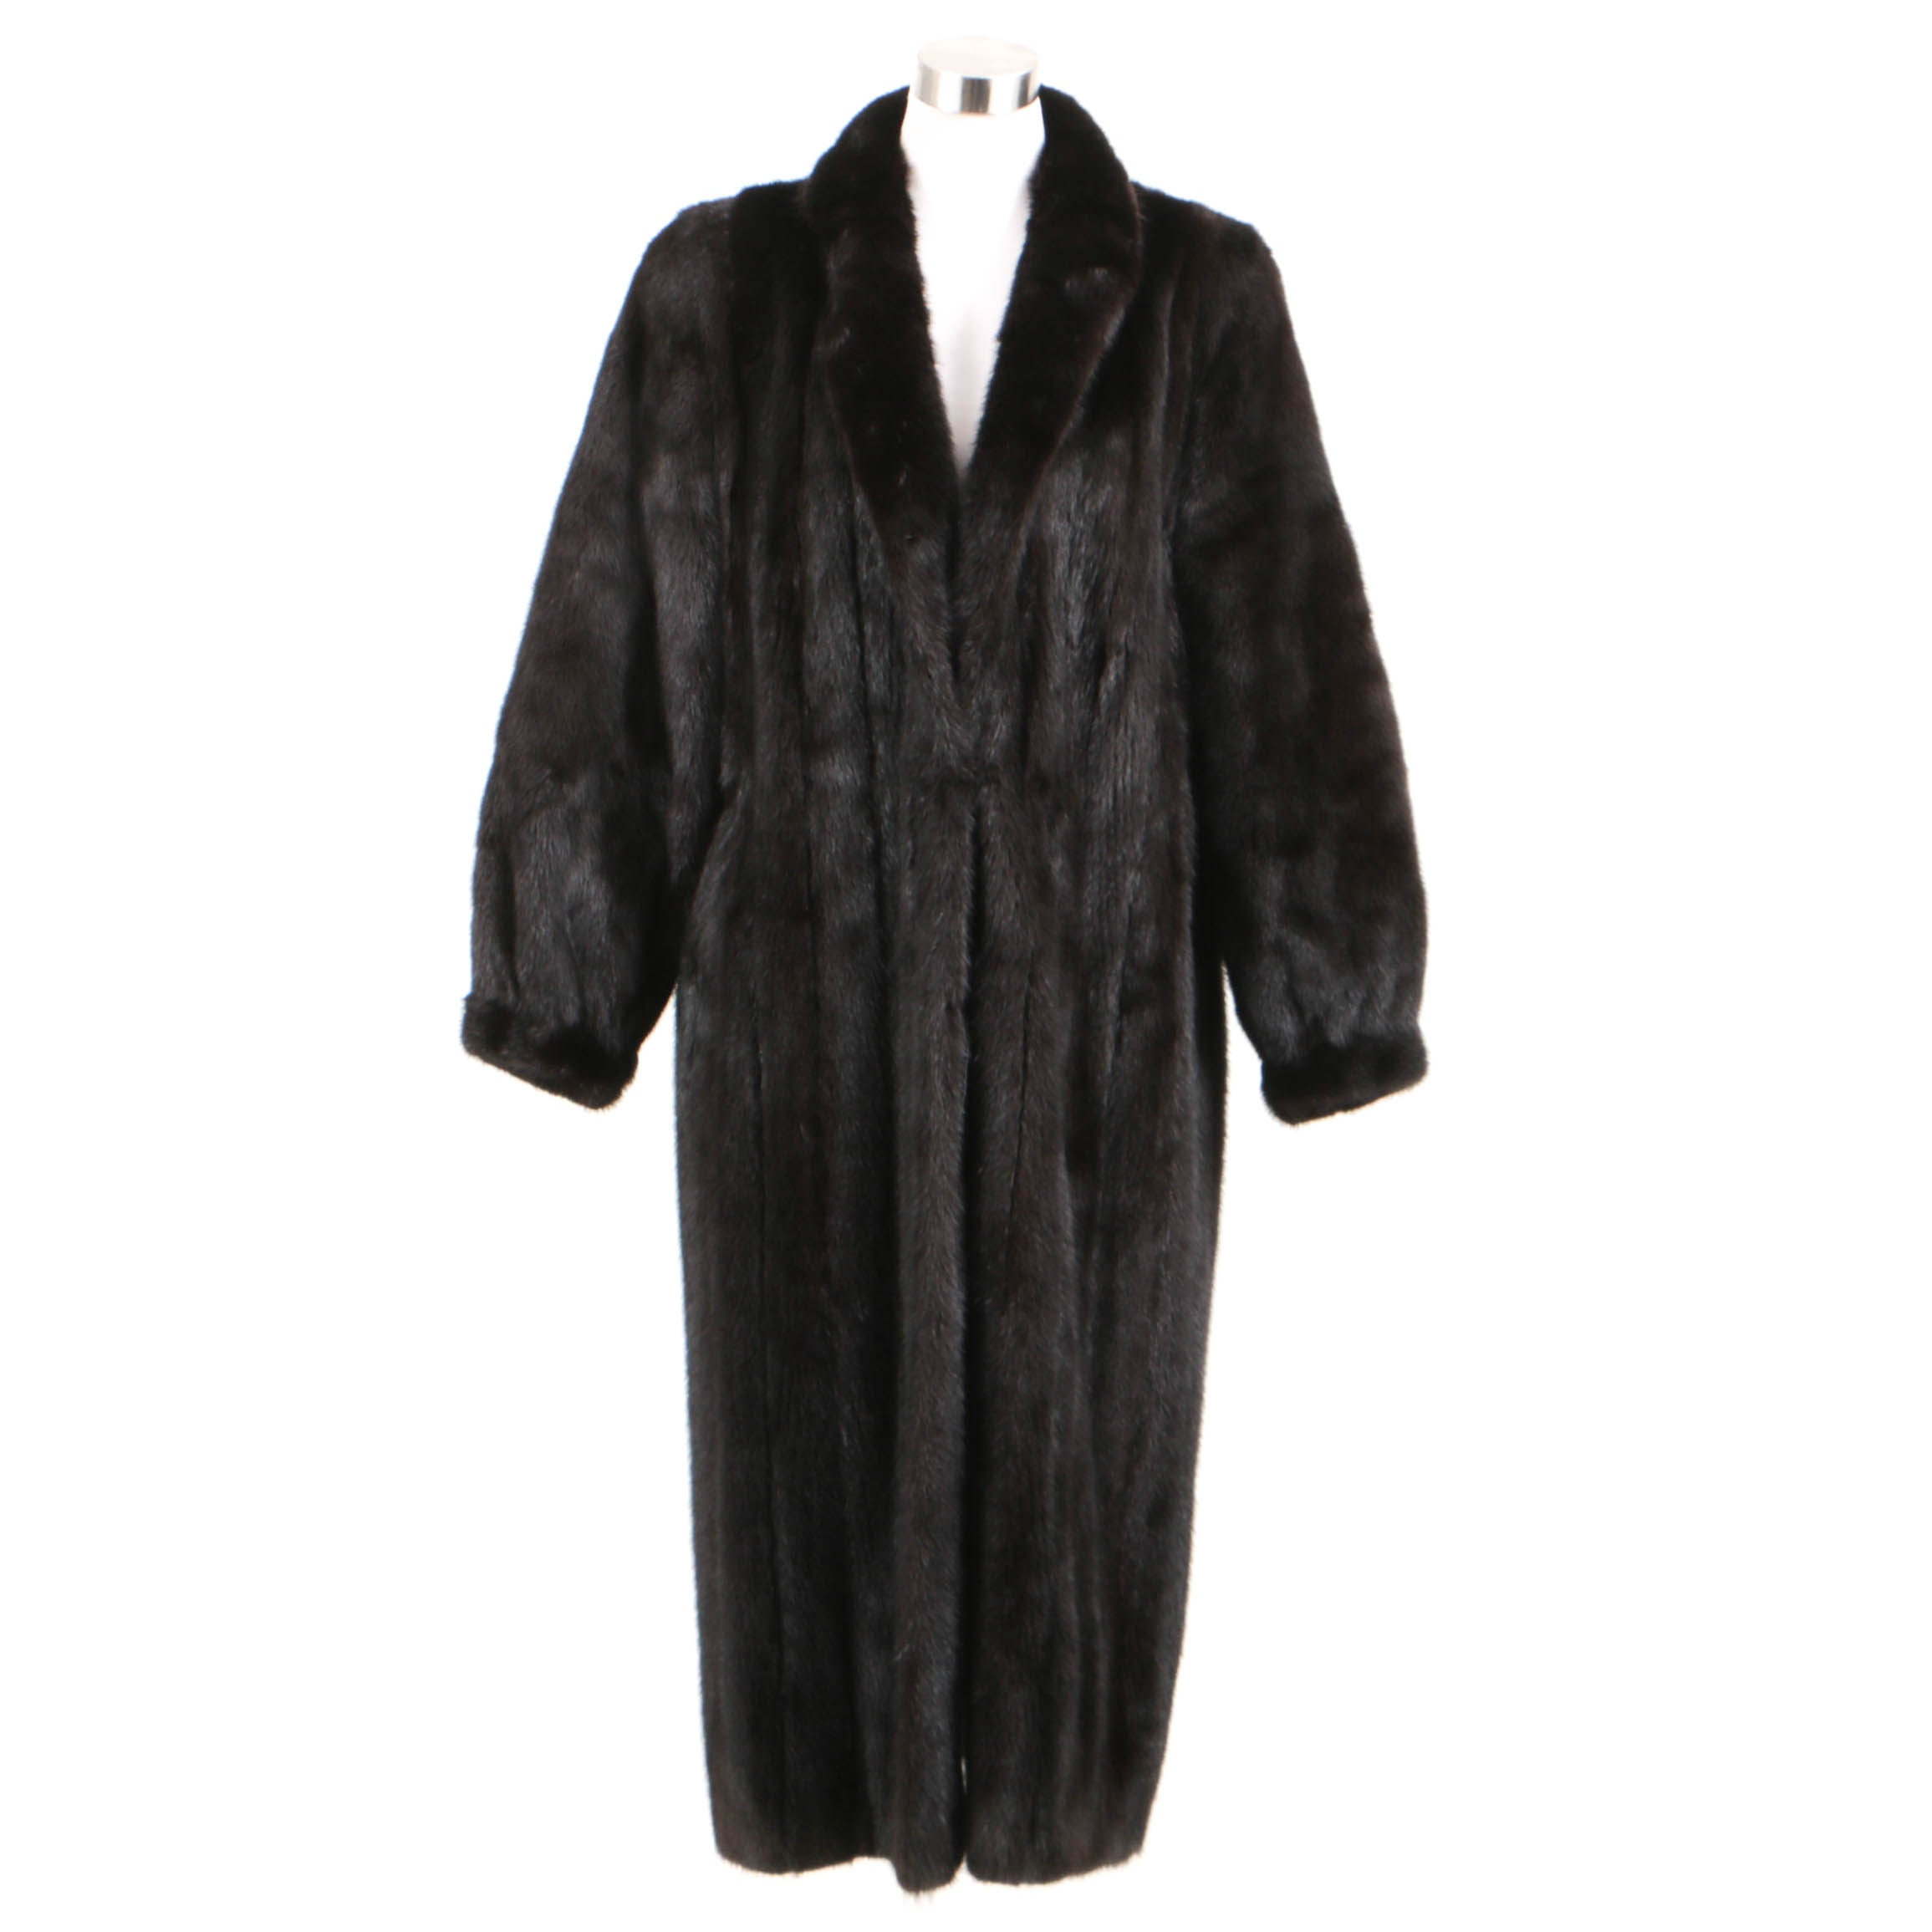 Full-Length Dark Brown Mink Fur Coat